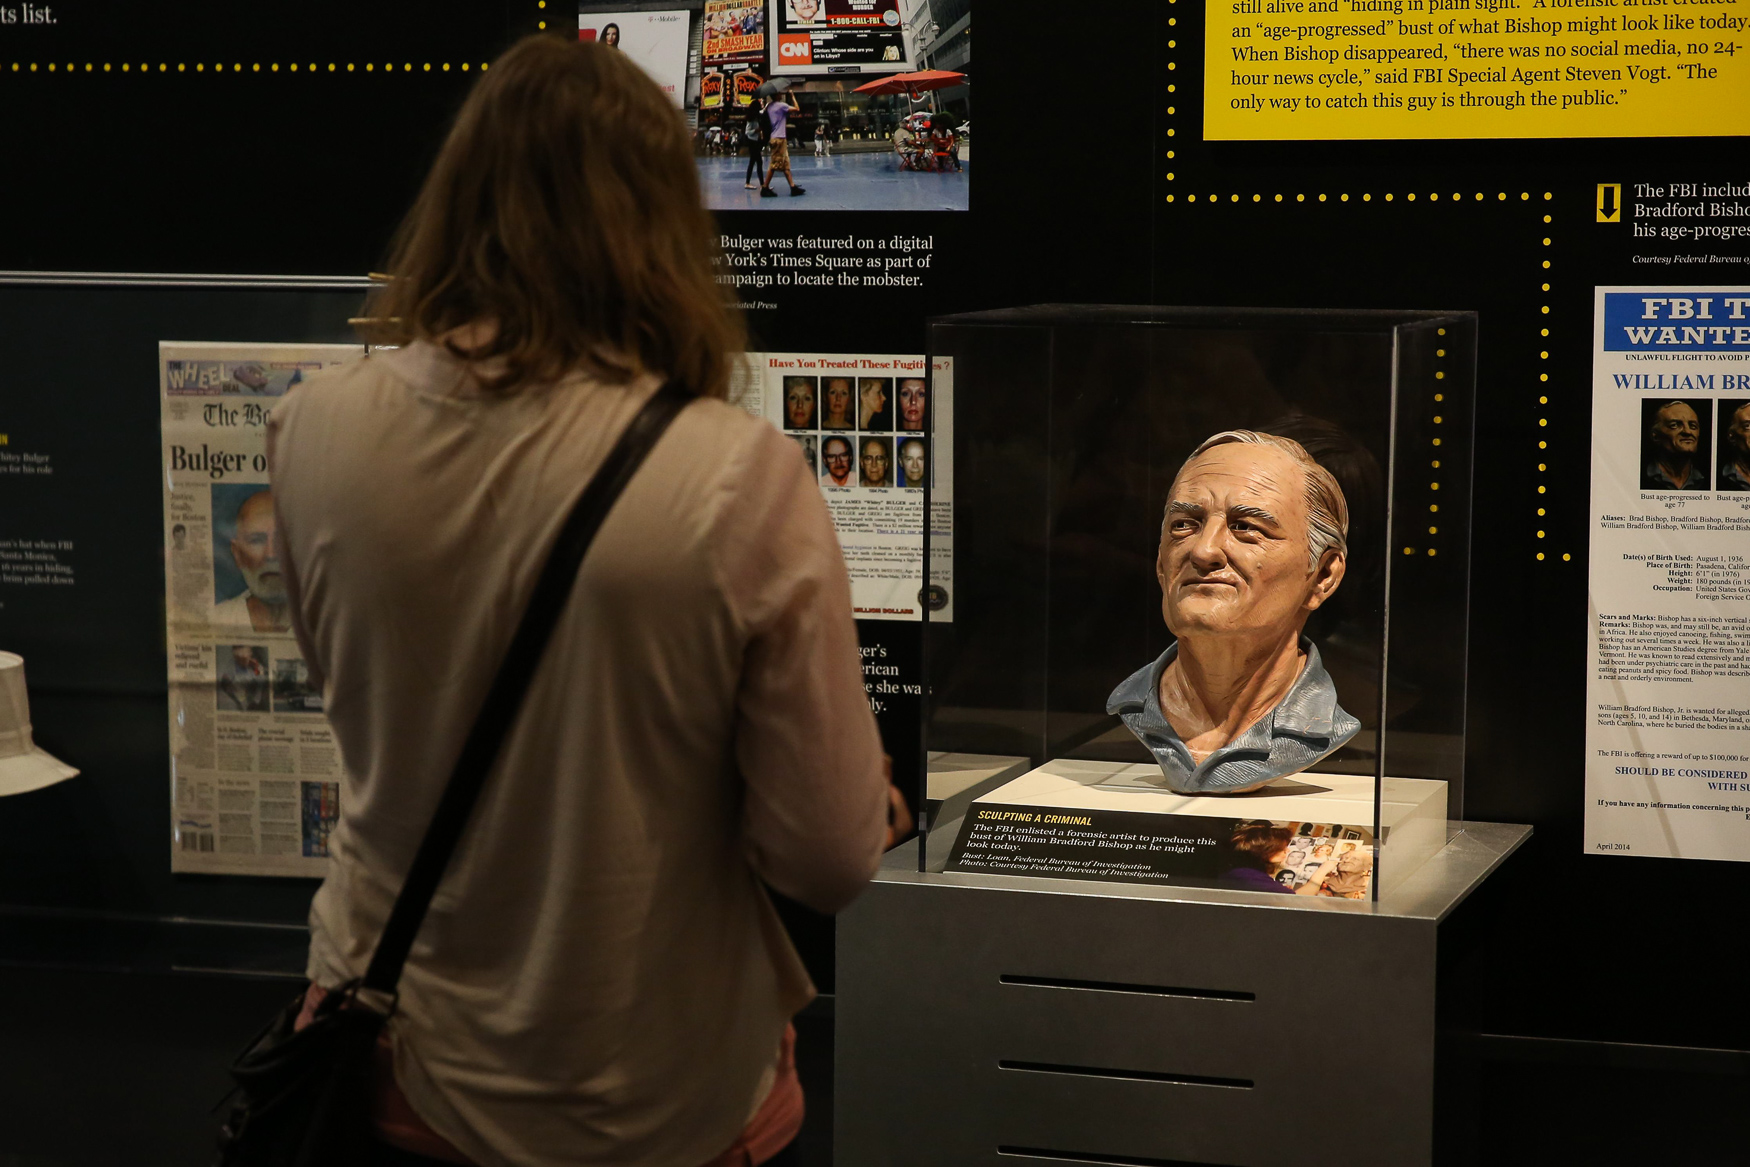 The Newseum occupies a massive space and there are exhibits that will keep you occupied for hours, like the Pulitzer photo center and the special exhibition on how the FBI tracks terrorism. Tickets are normally $24.95, but furloughed feds can get in for free when they show their IDs. (Amanda Andrade-Rhoades/DC Refined)